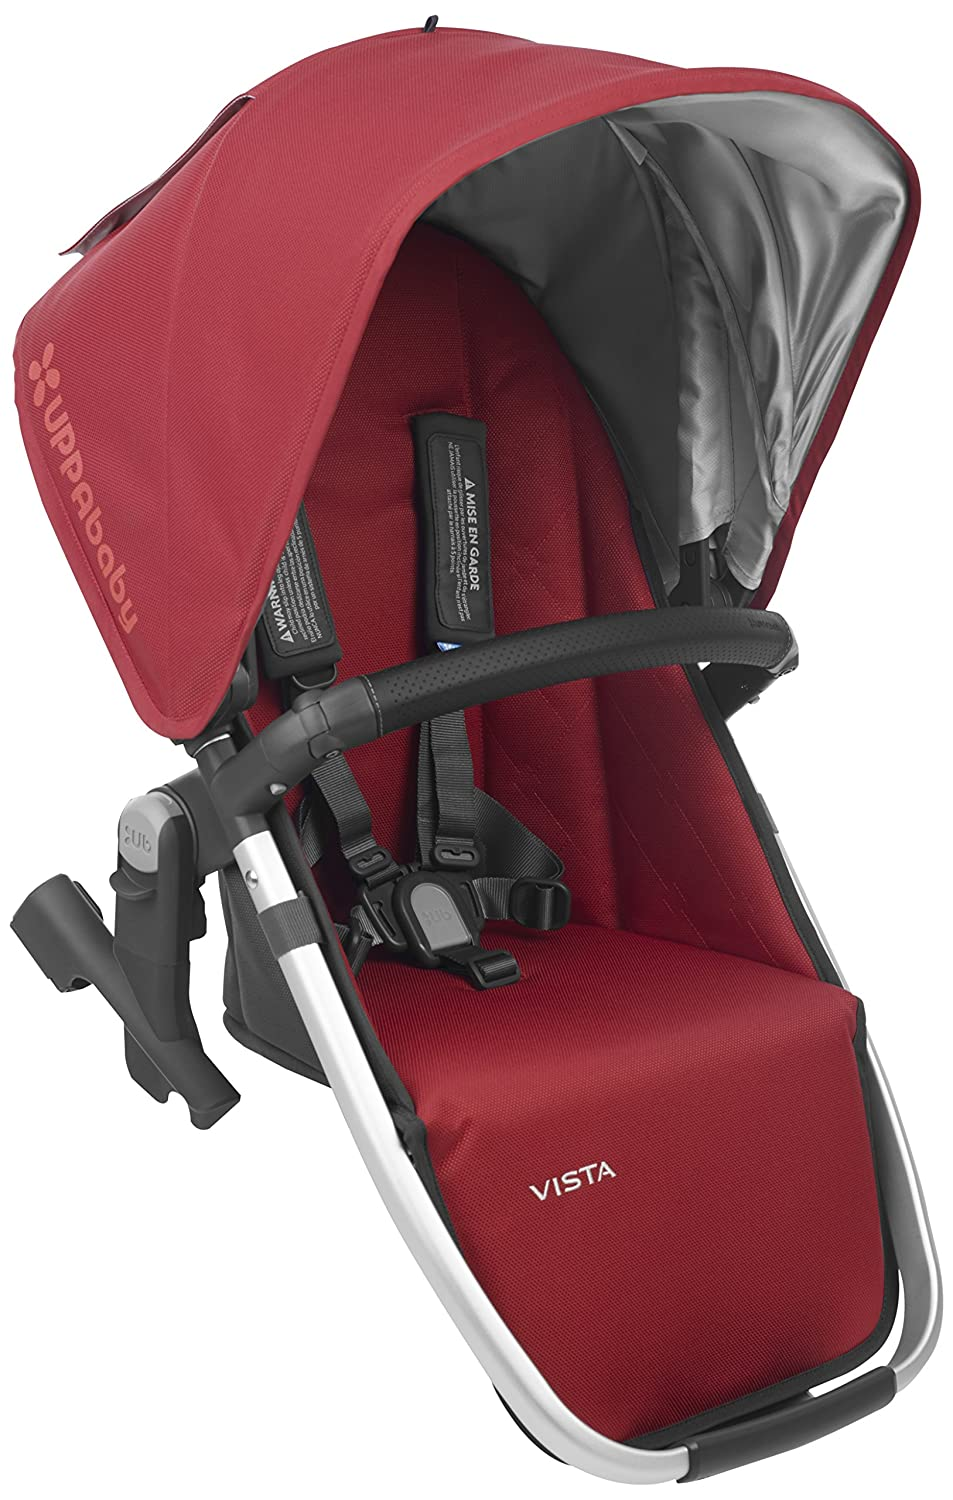 2018 UPPAbaby Vista RumbleSeat -Denny (Red/Silver/Black Leather) 81p6xaZRQyL._SL1500_